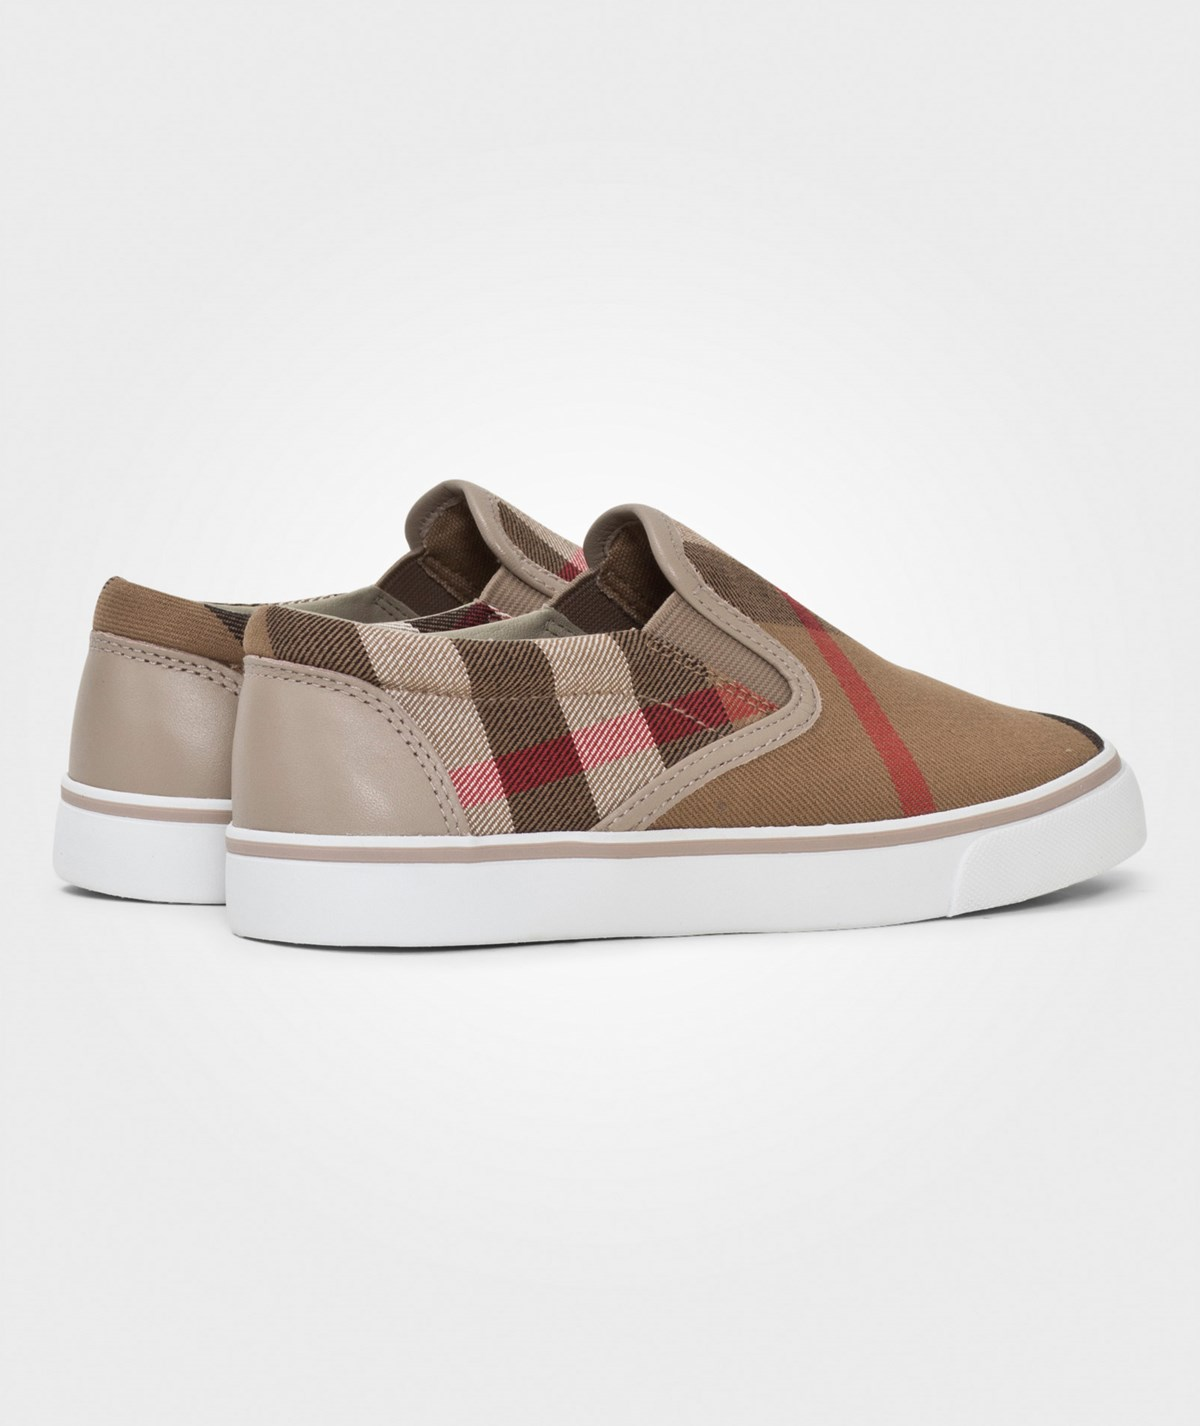 Burberry - House Check Cotton Slip-On Trainers Light Honey ...